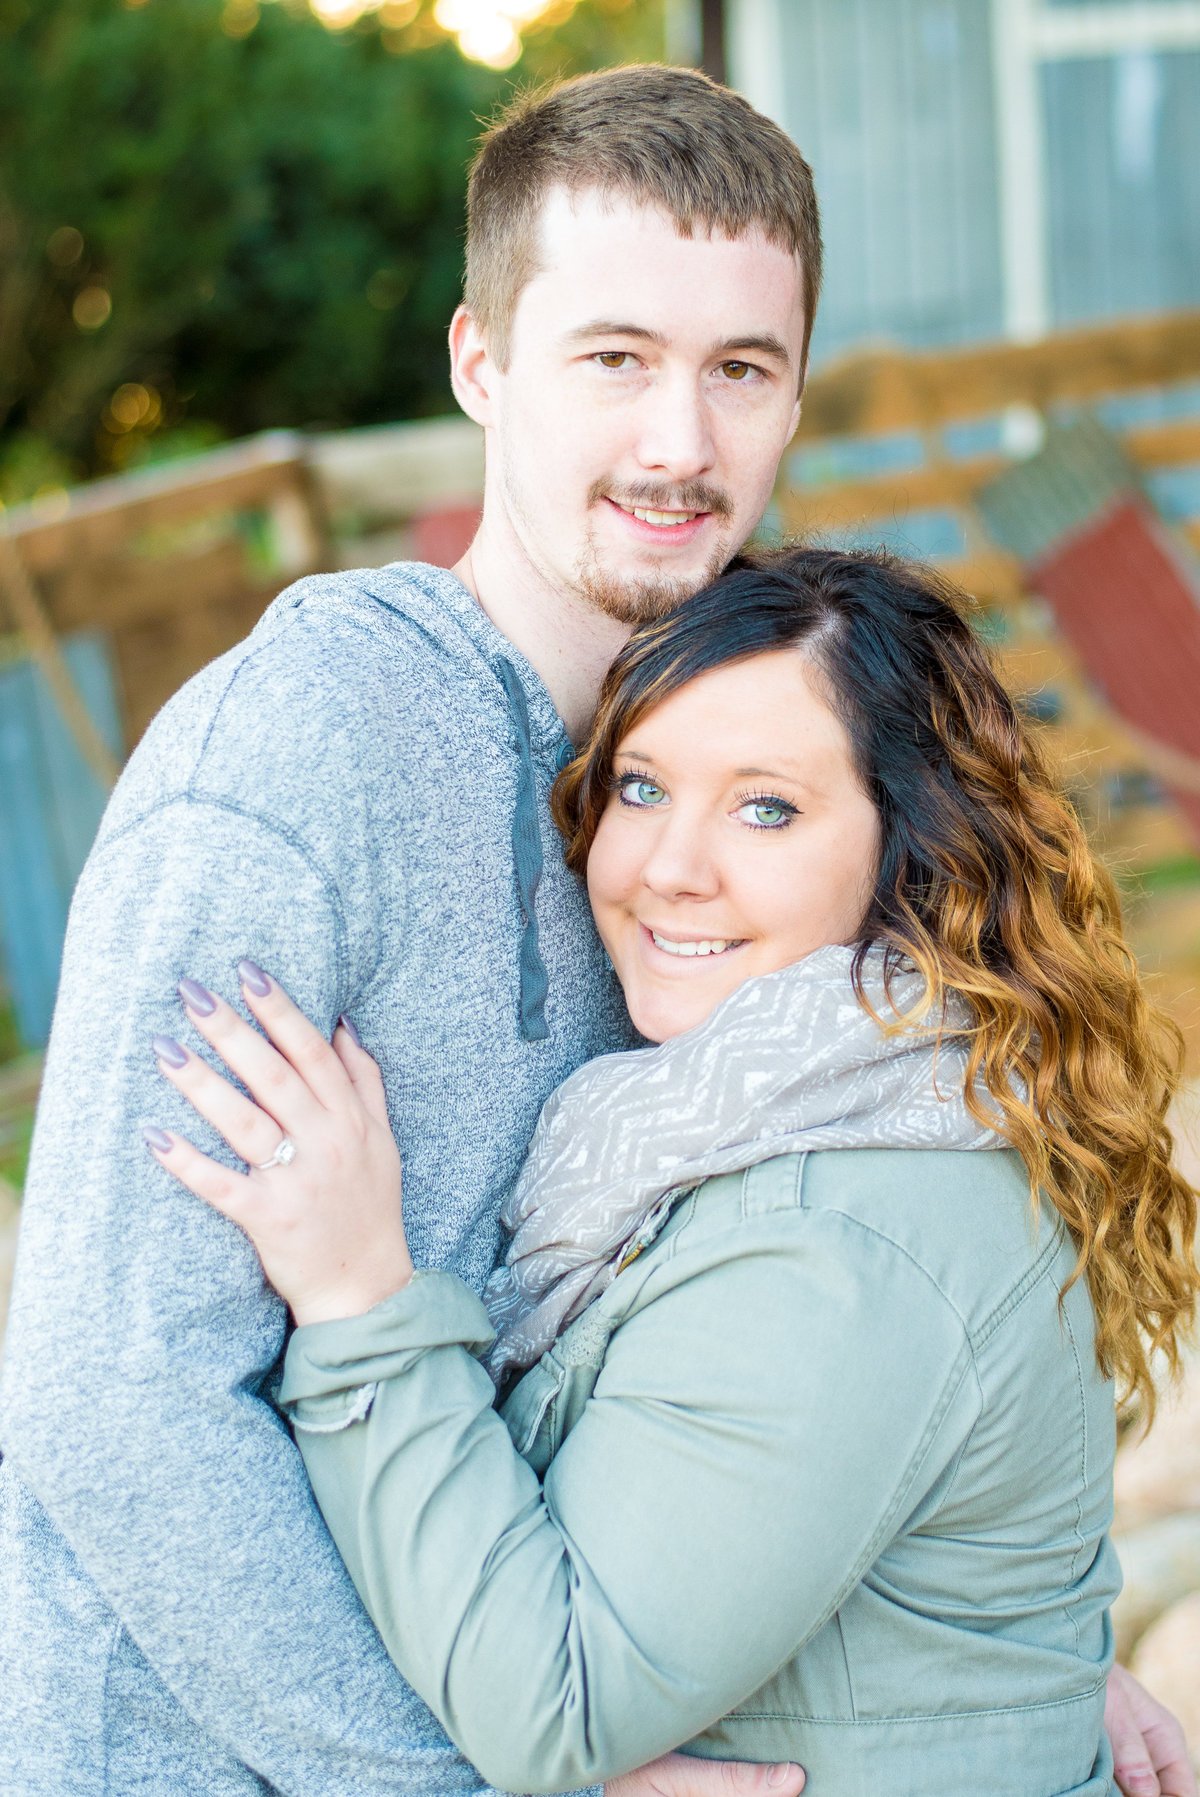 danielle kristine photography-engagements-21